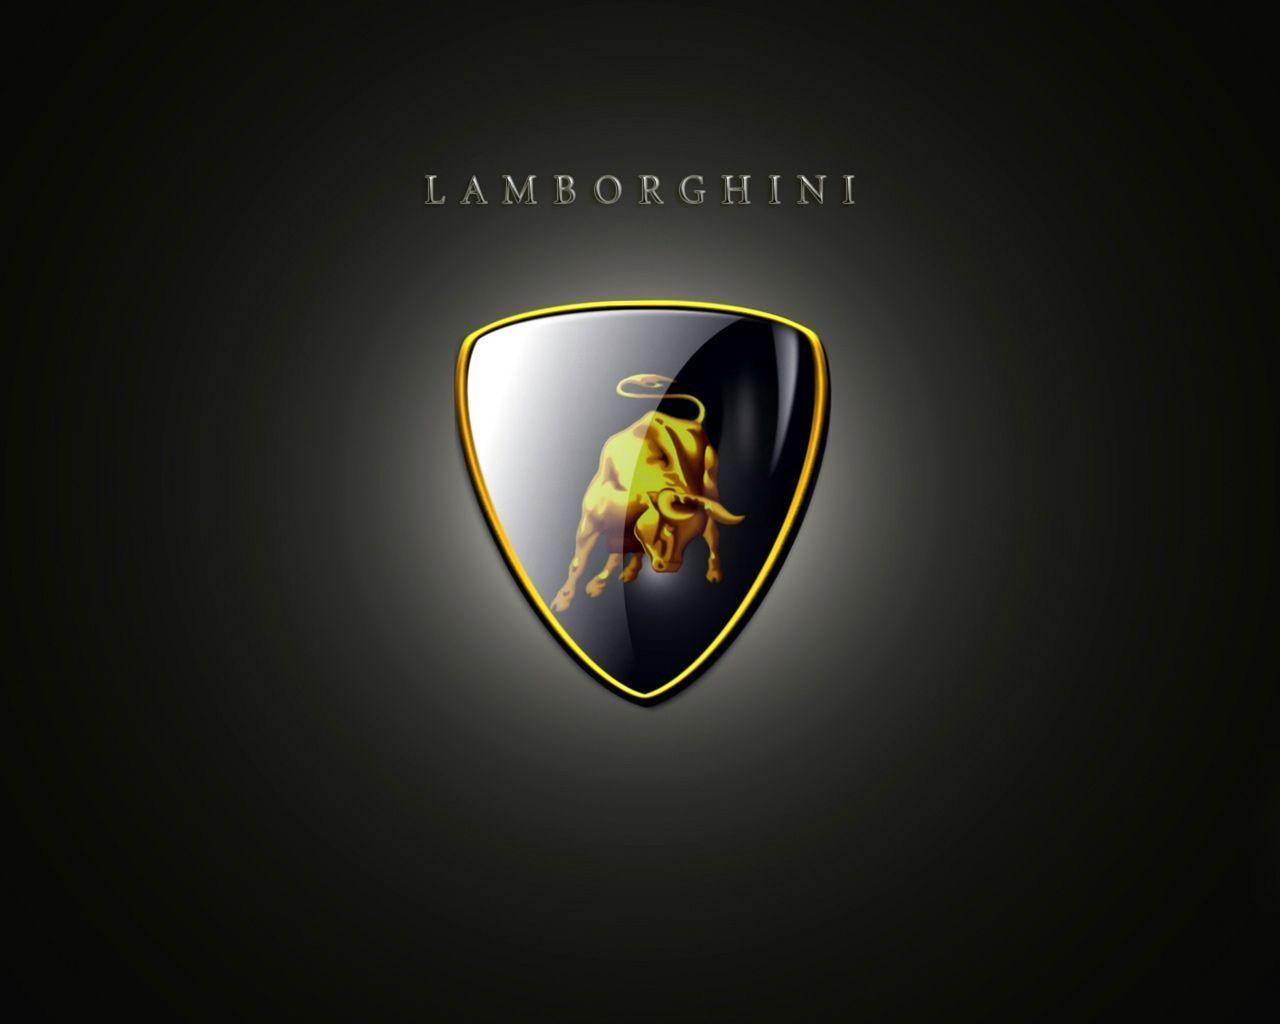 Wallpapers » Lamborghini Car Pictures @ IMAGES STOCKS PHOTOS